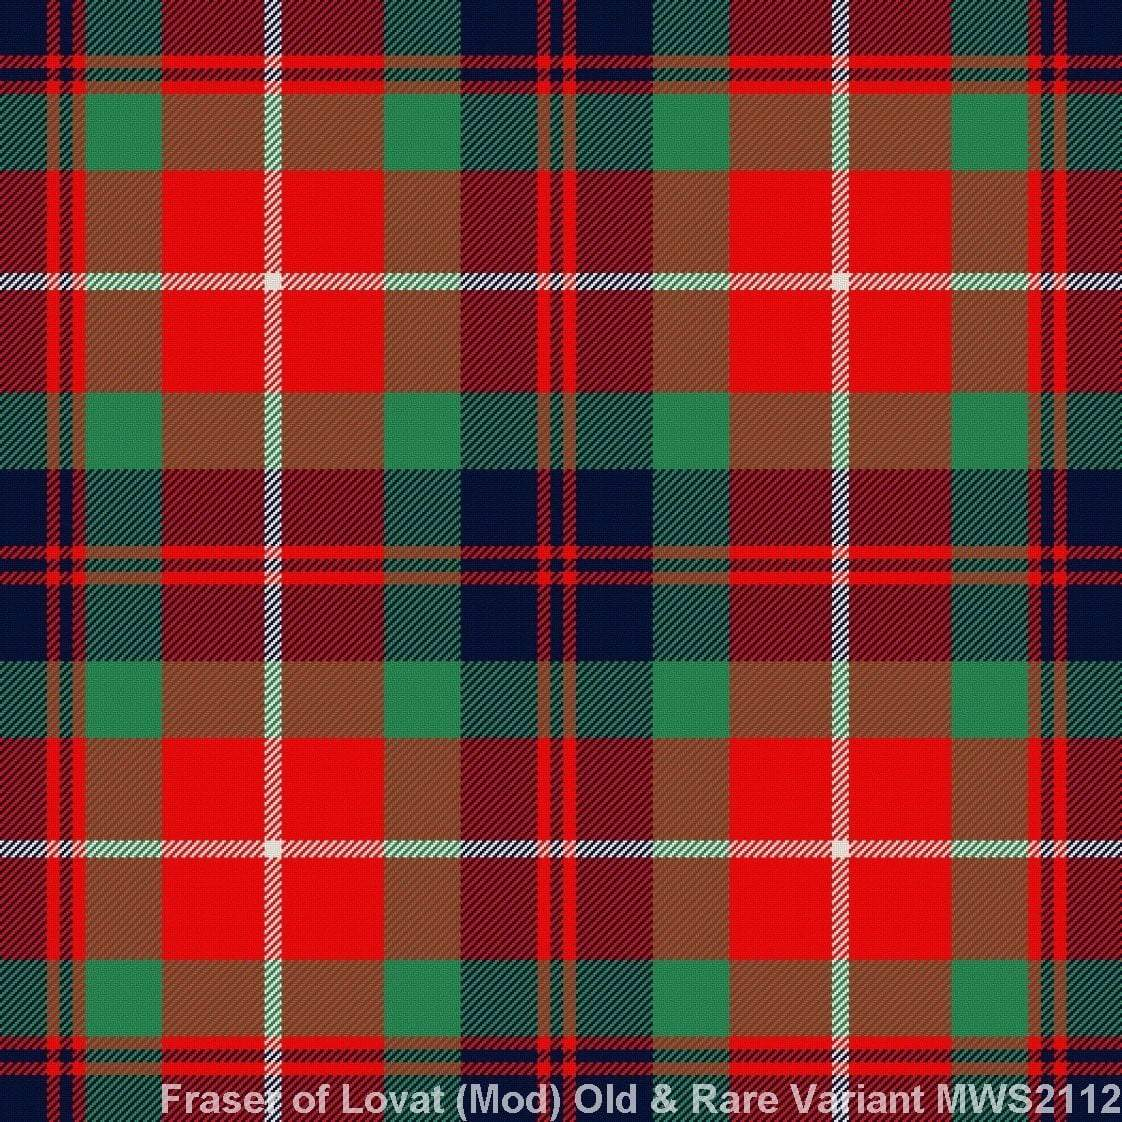 Fraser of Lovat Modern - Old and Rare Variant